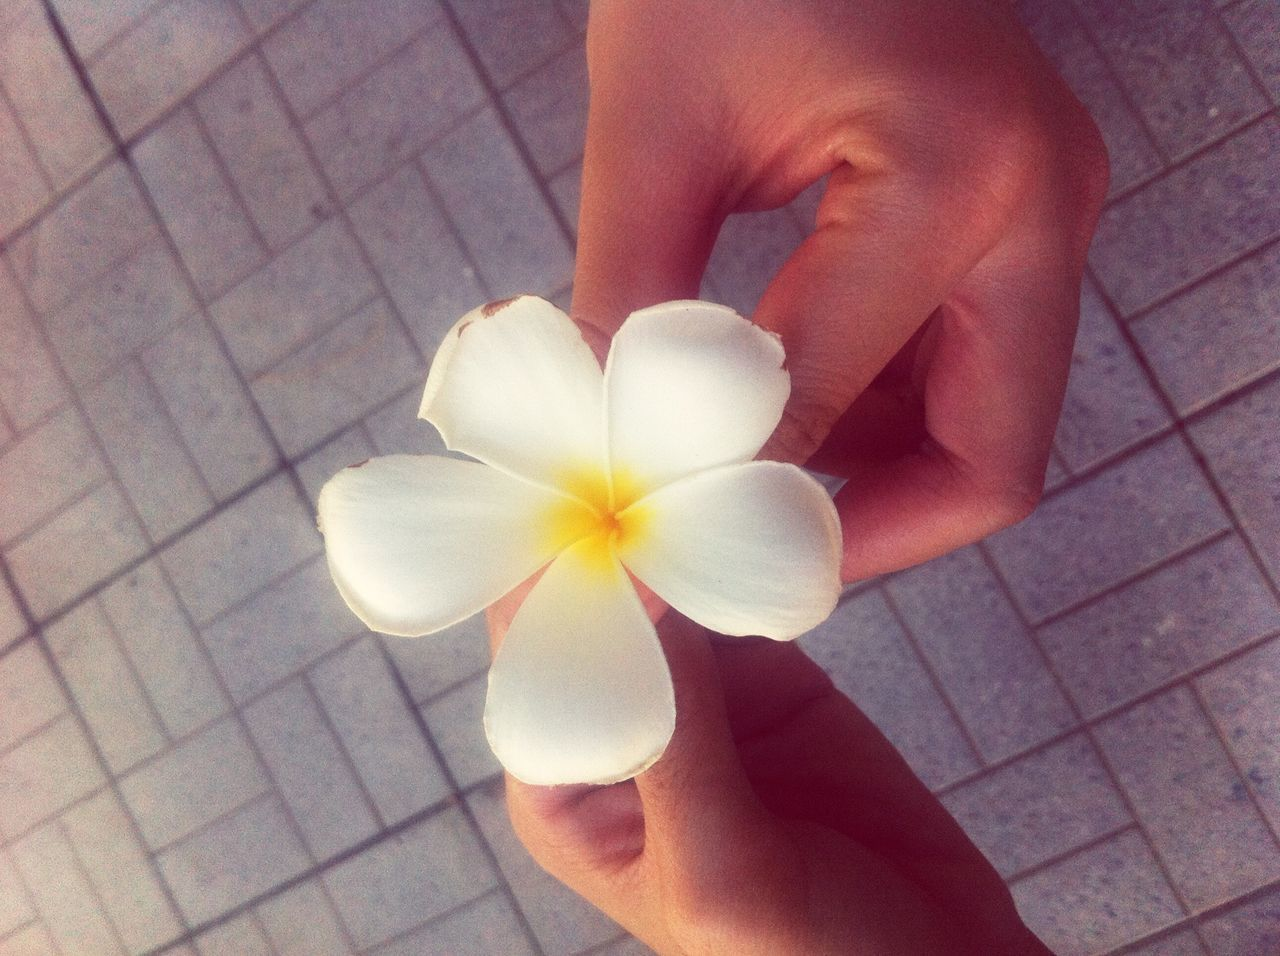 HIGH ANGLE VIEW OF HAND HOLDING WHITE FLOWER